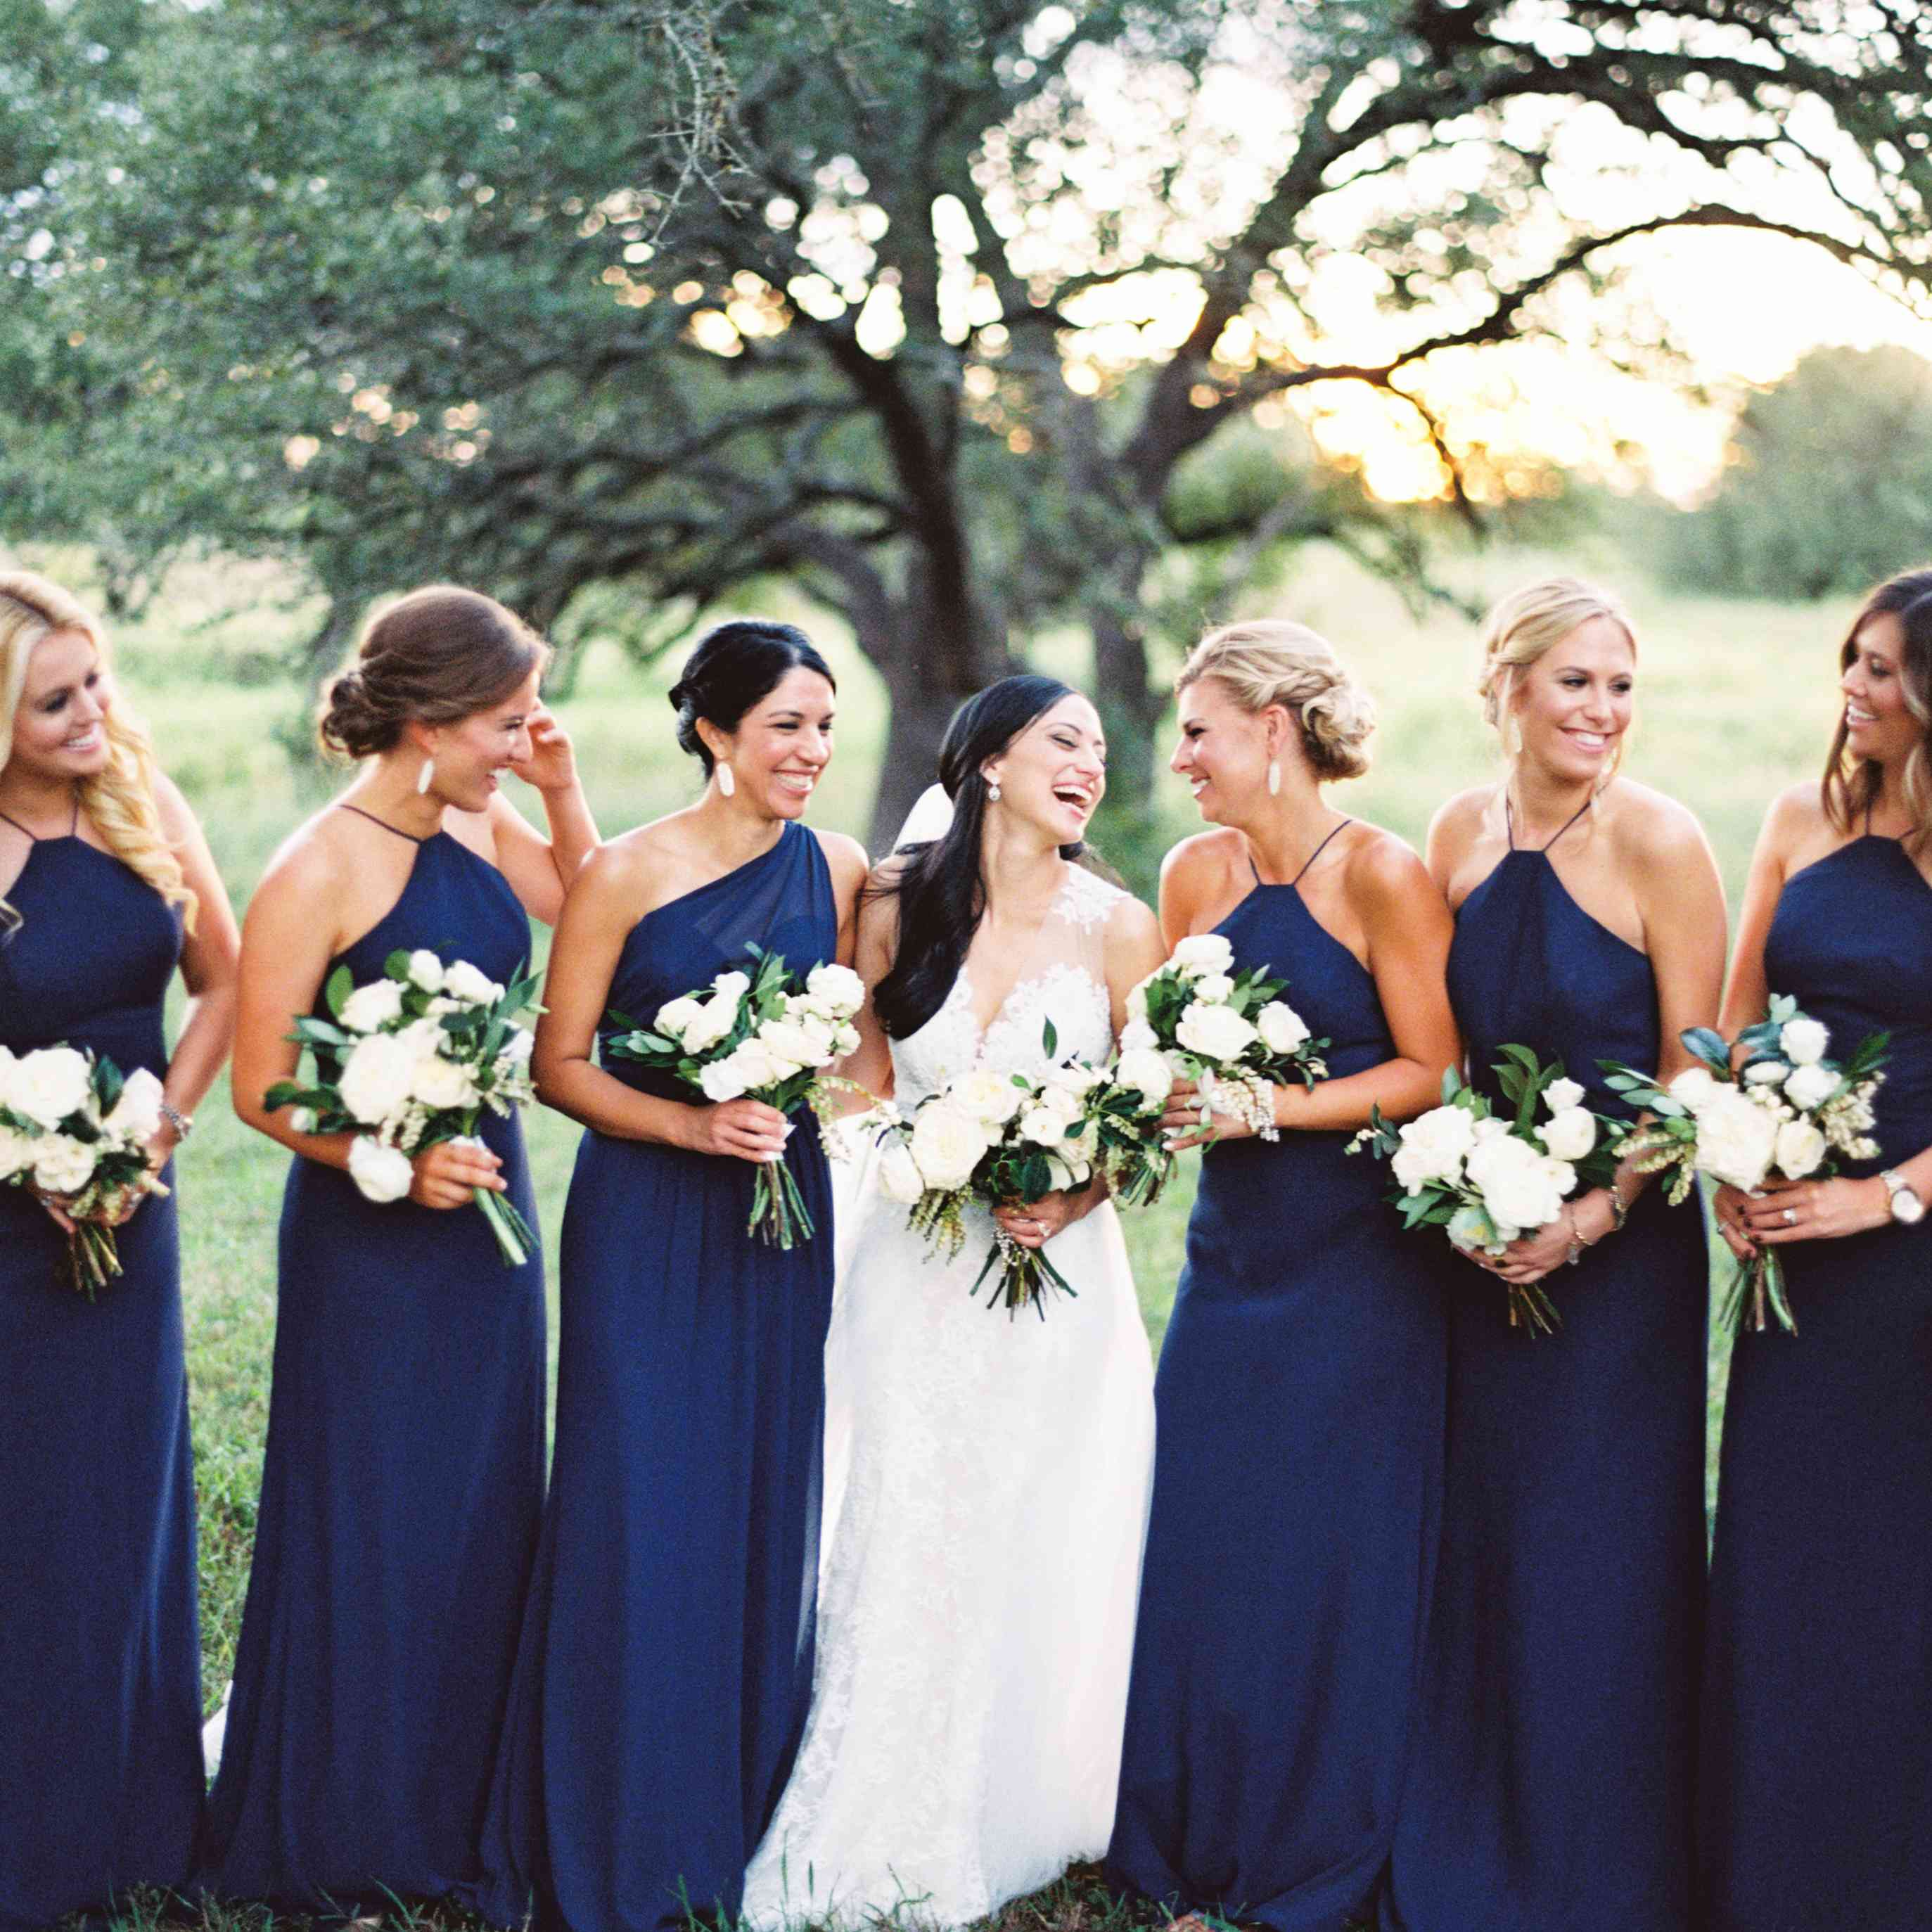 How To Make Your Maid Of Honor Stand Out From The Rest